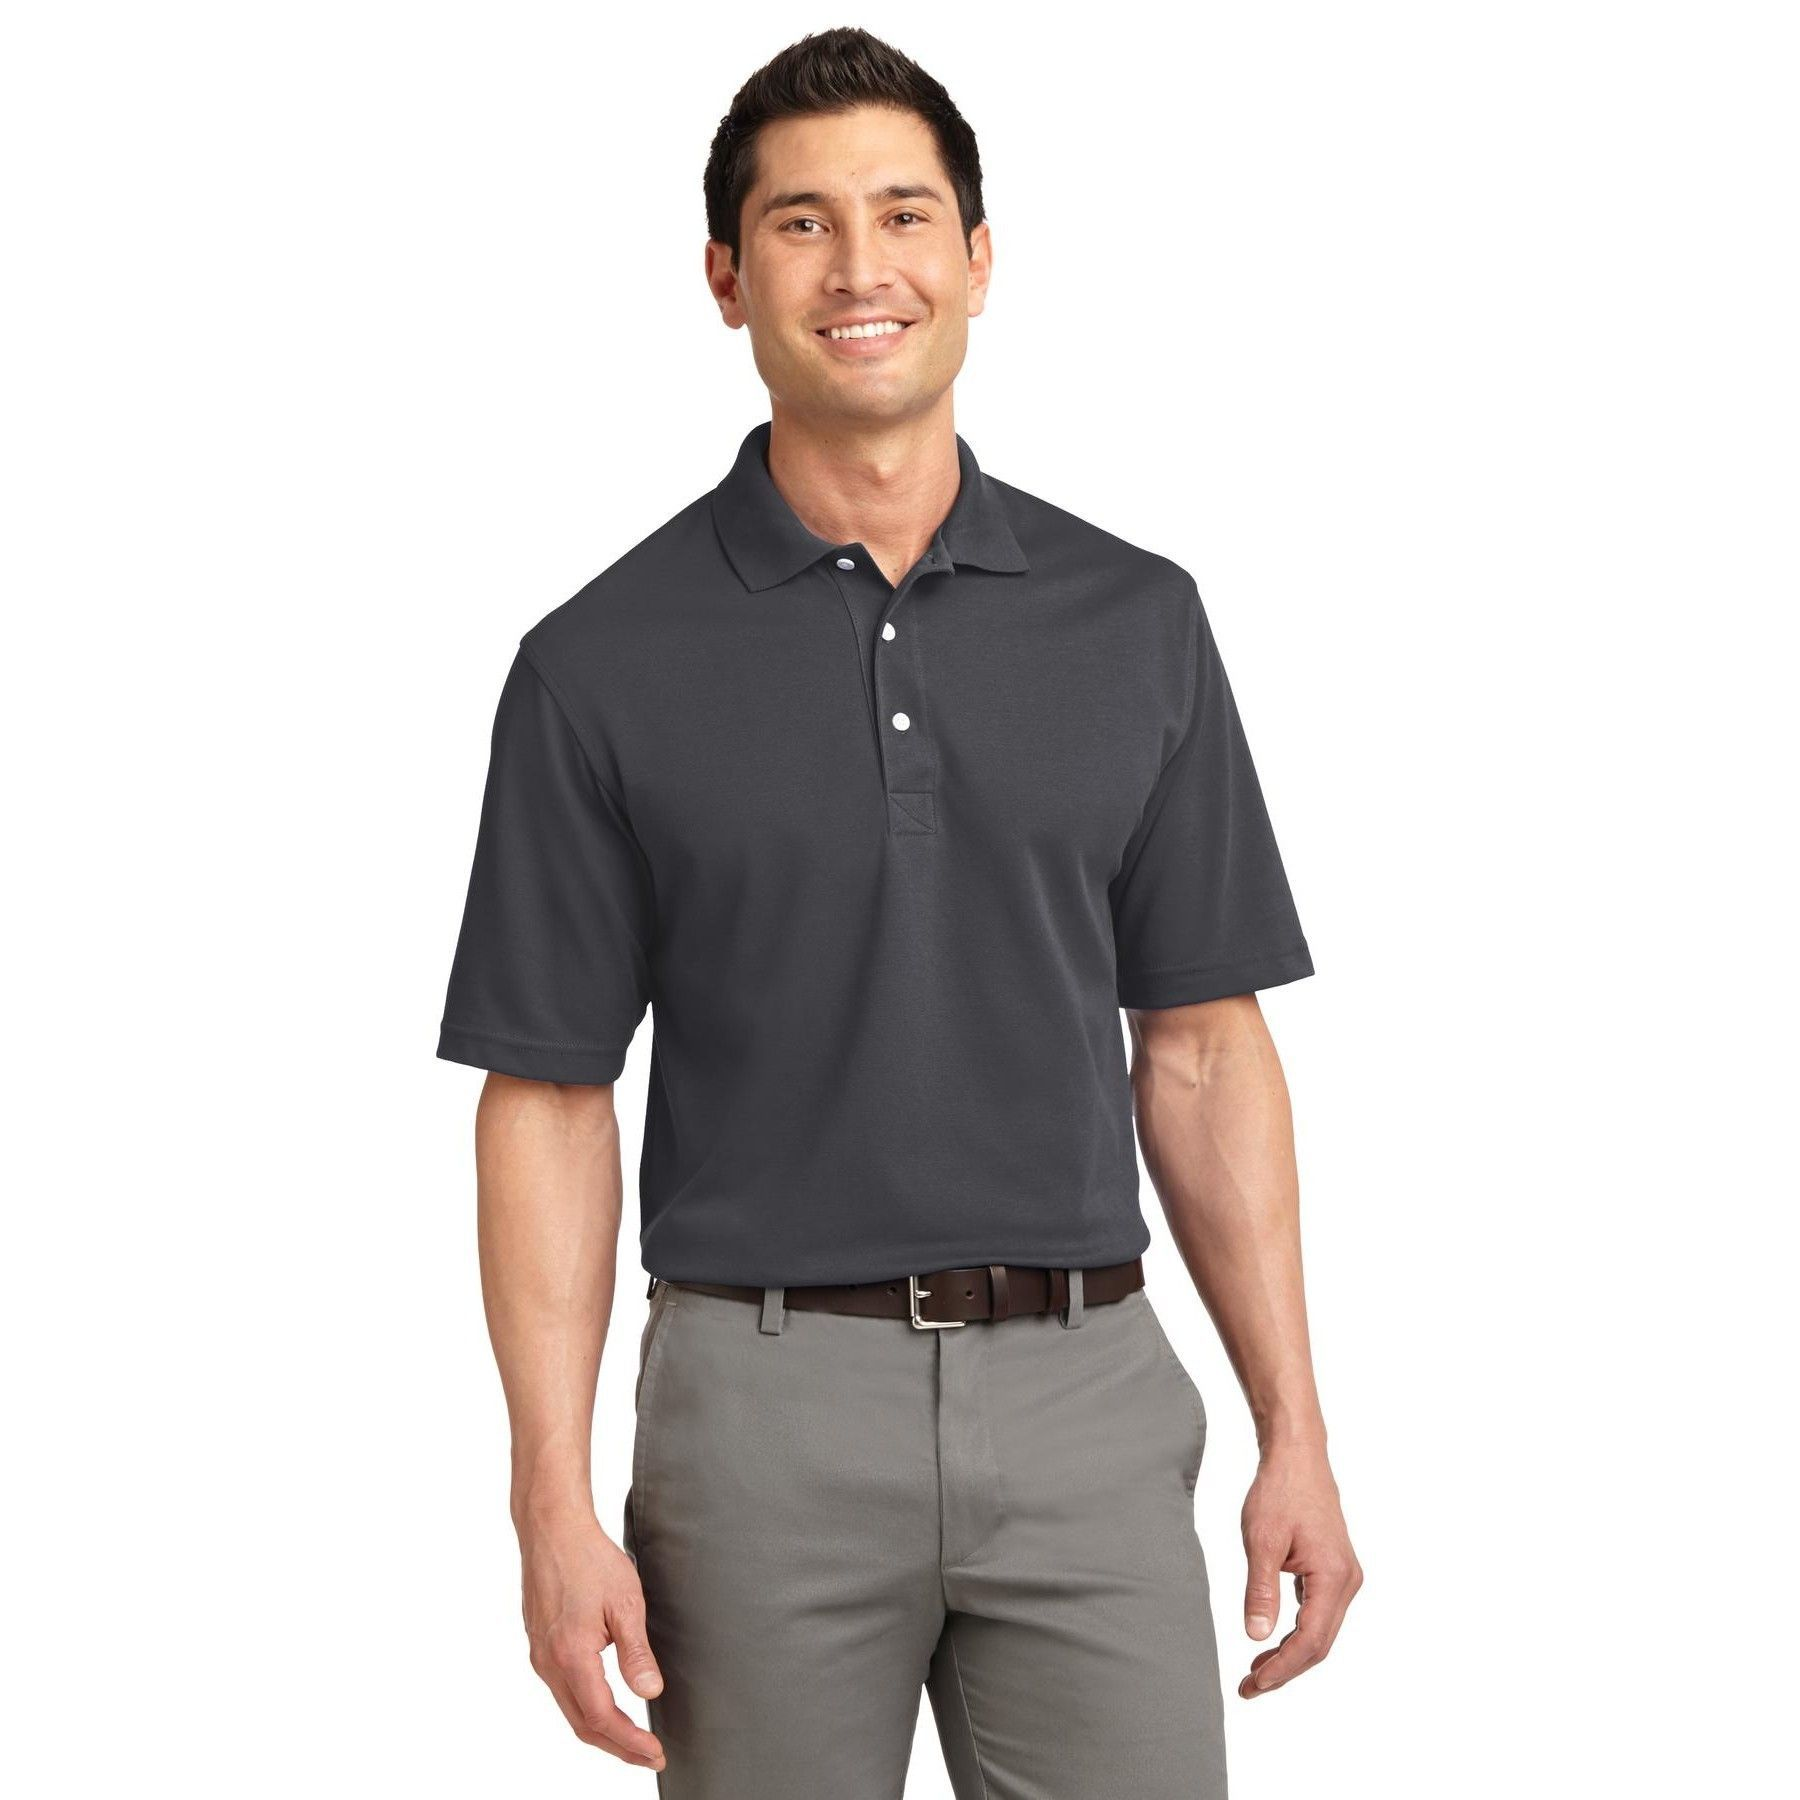 It's almost tee time! Spring is coming, so now is the time to get ready for golf with Minuteman Press golf apparel. Add your logo to these soft, breathable baby pique shirts for yourself, your staff, and customers.